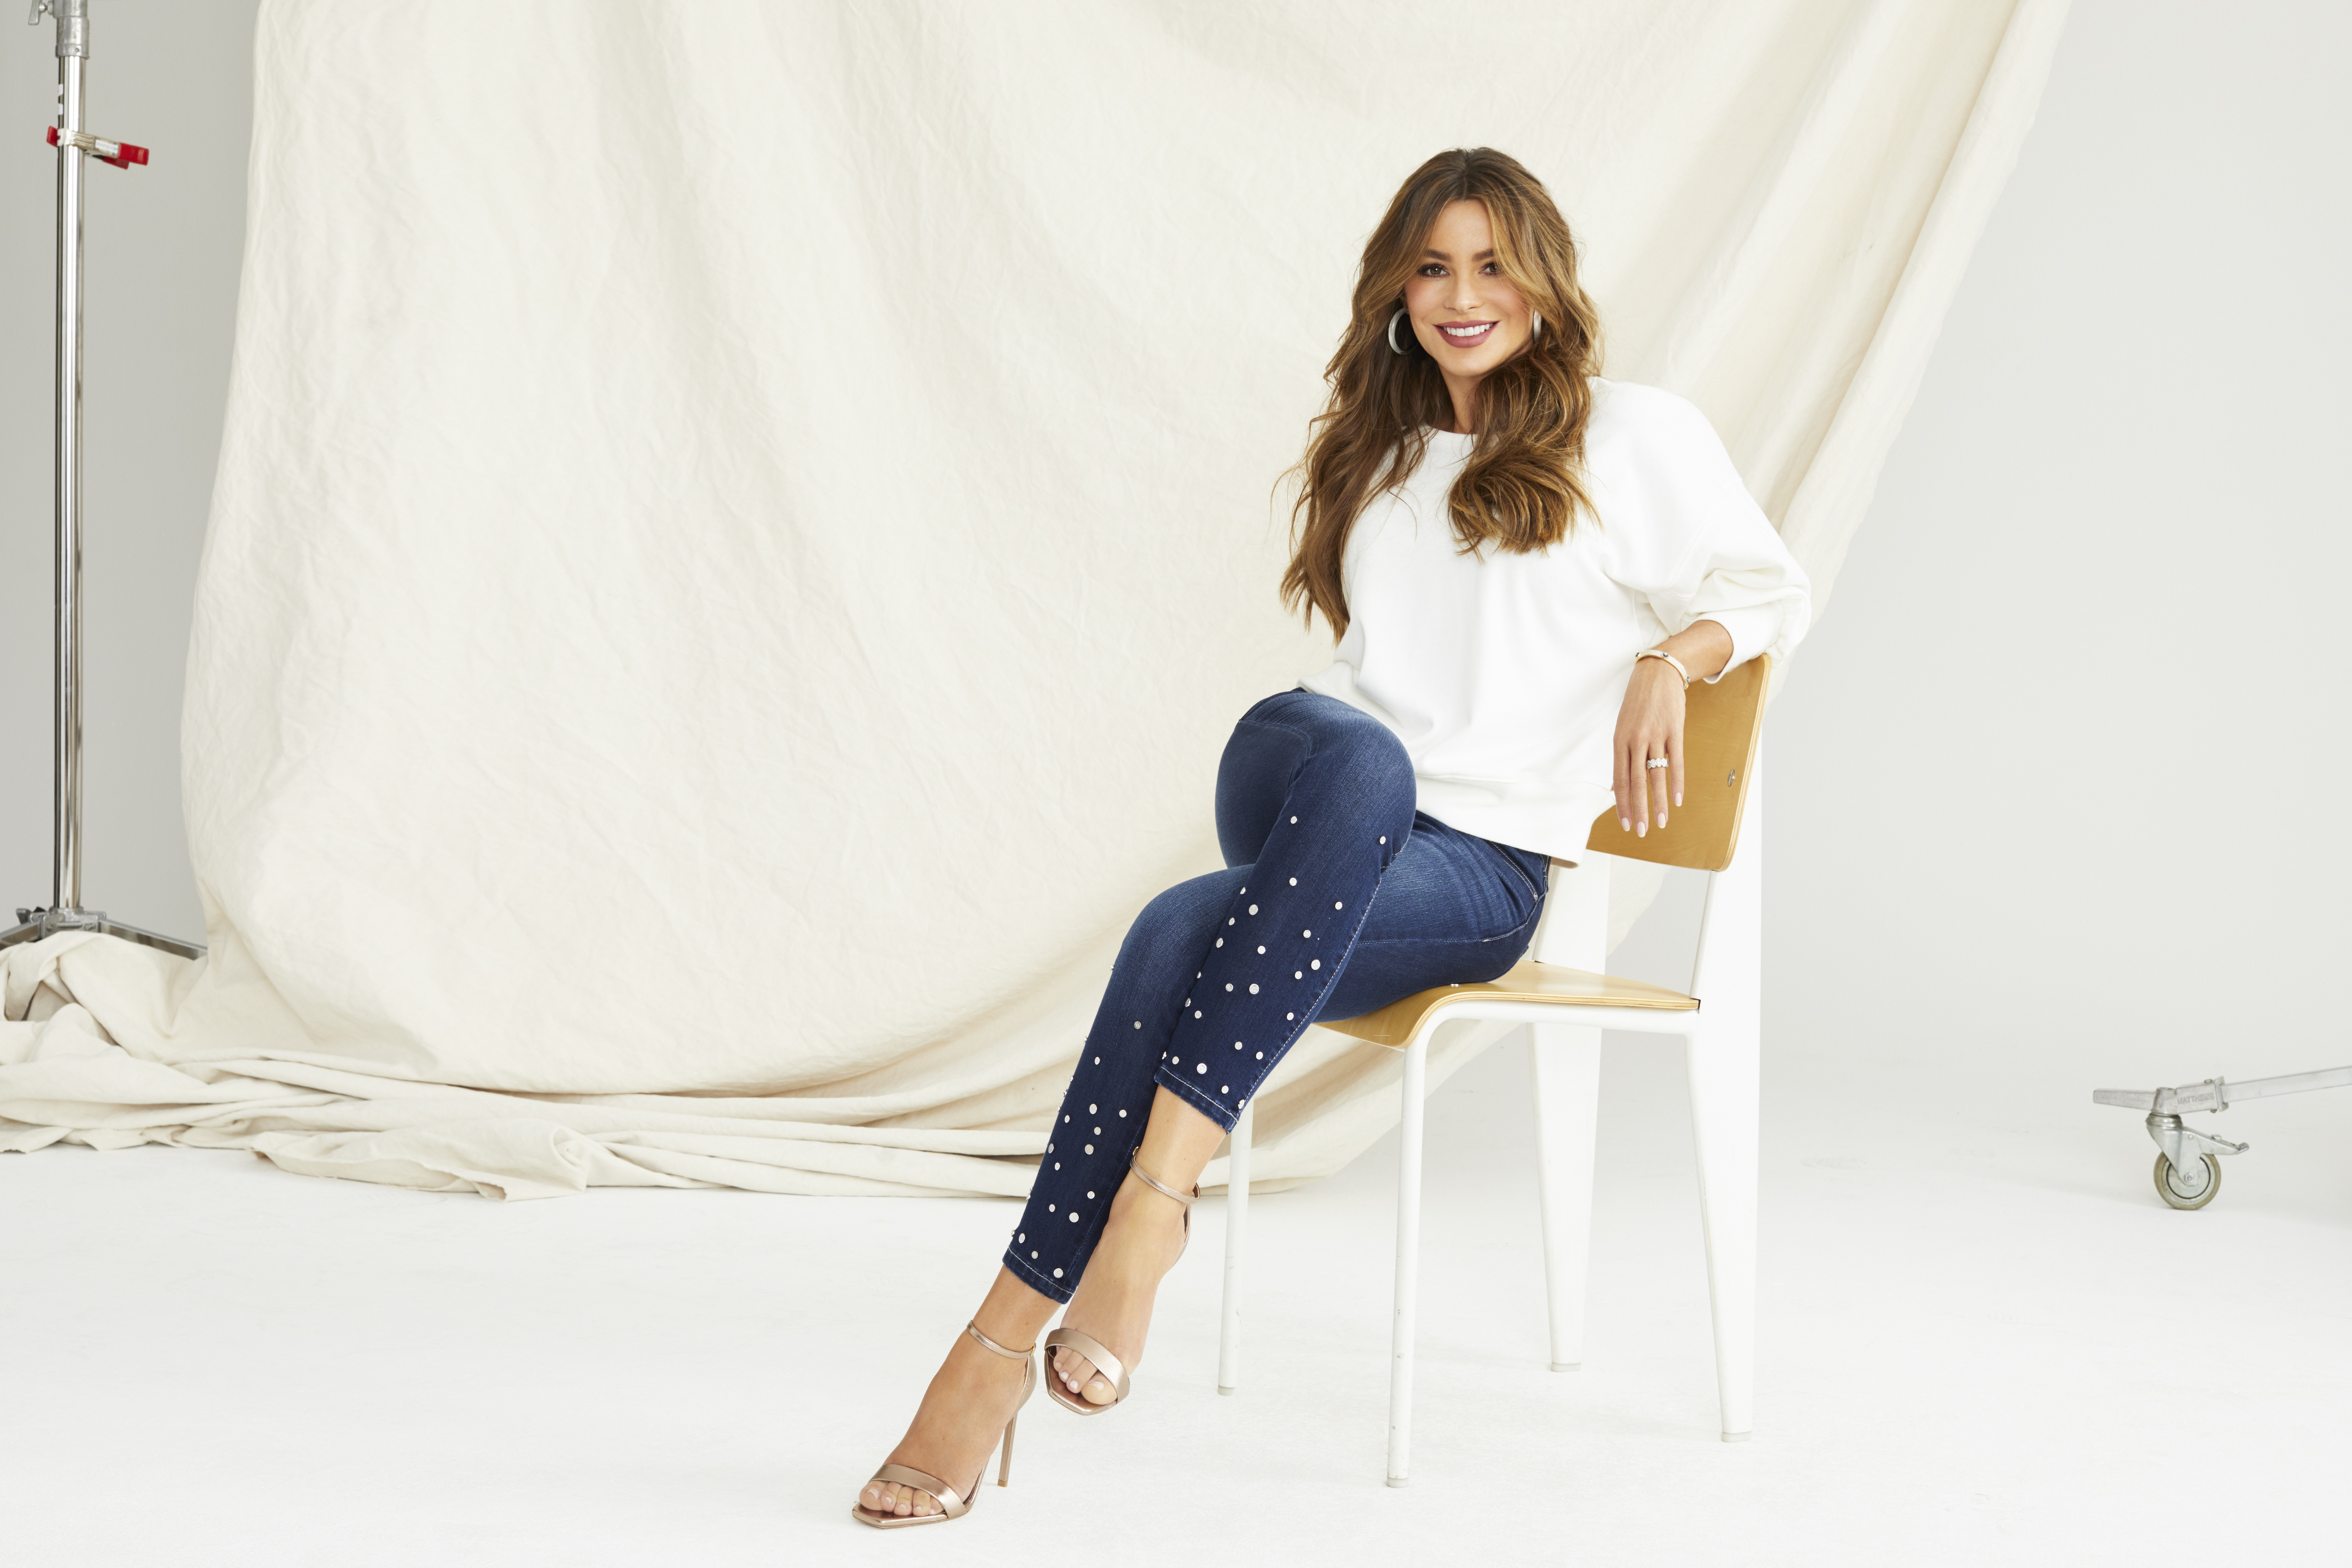 sofia vergara in the sofia skinny studded mid rise stretch ankle jean open back knit banded bottom Sofía Vergaras New Denim Line Is Everything You Love About Expensive Brands—at Walmart.com Prices